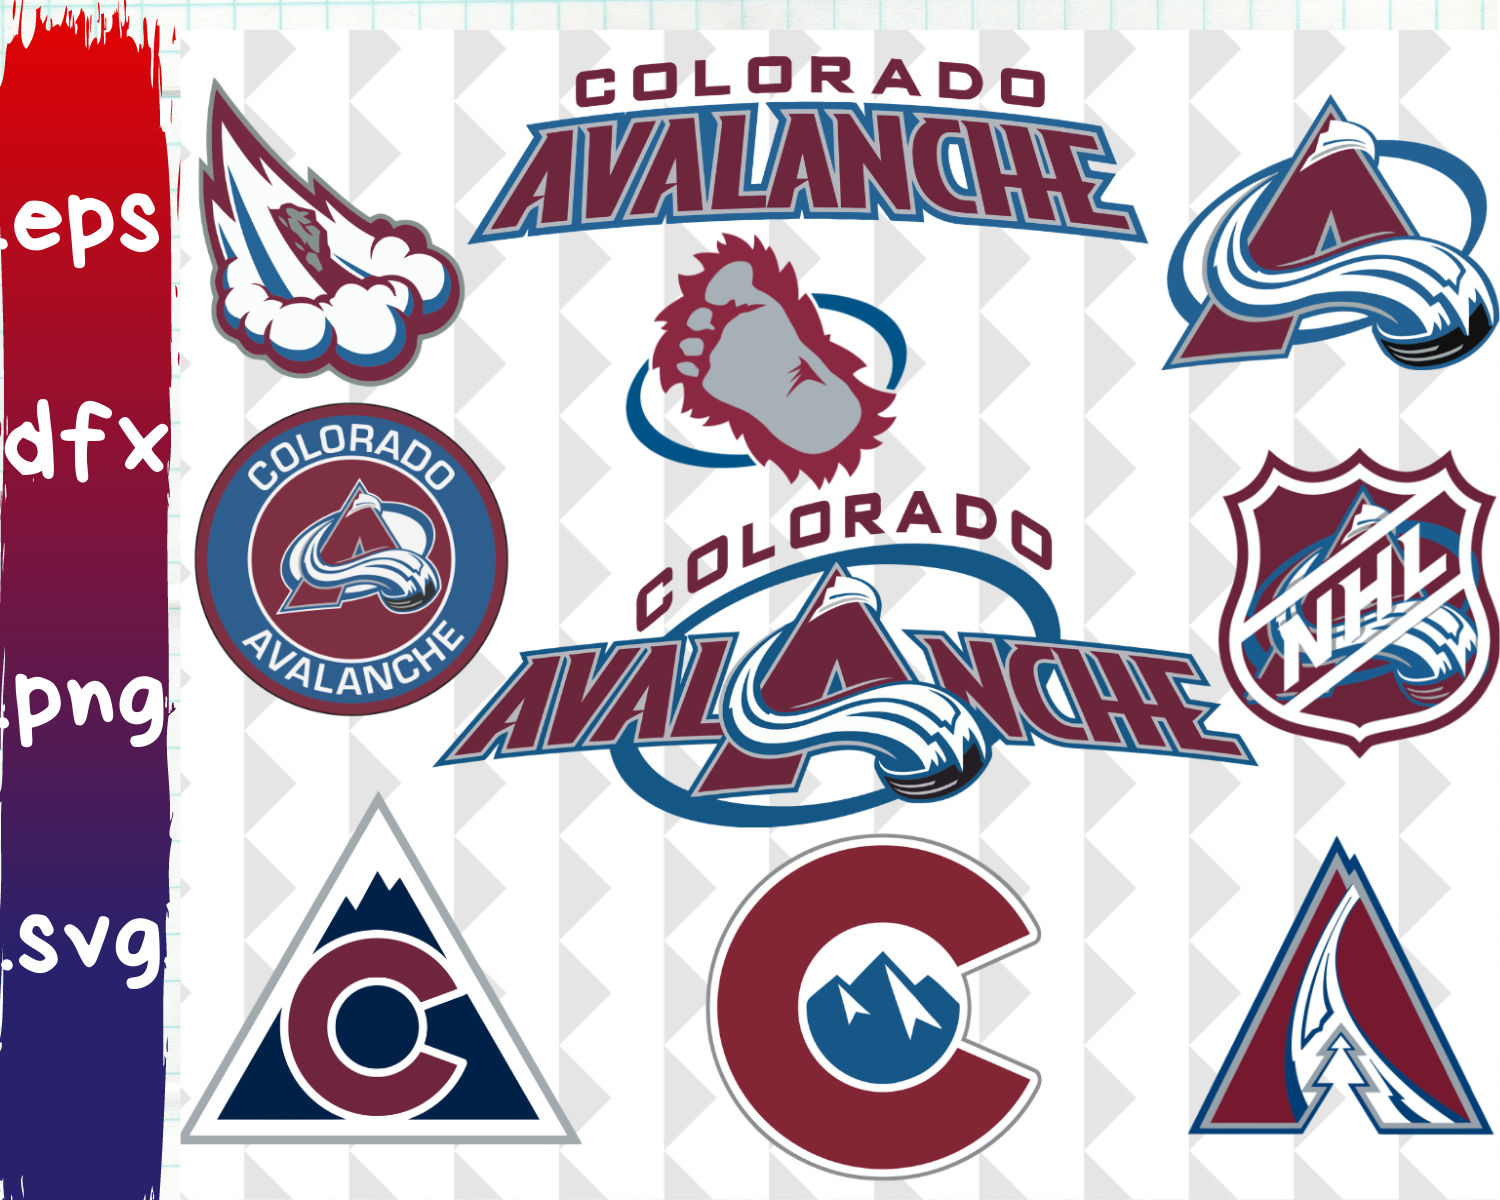 Colorado Avalanche, Colorado Avalanche svg, Colorado.